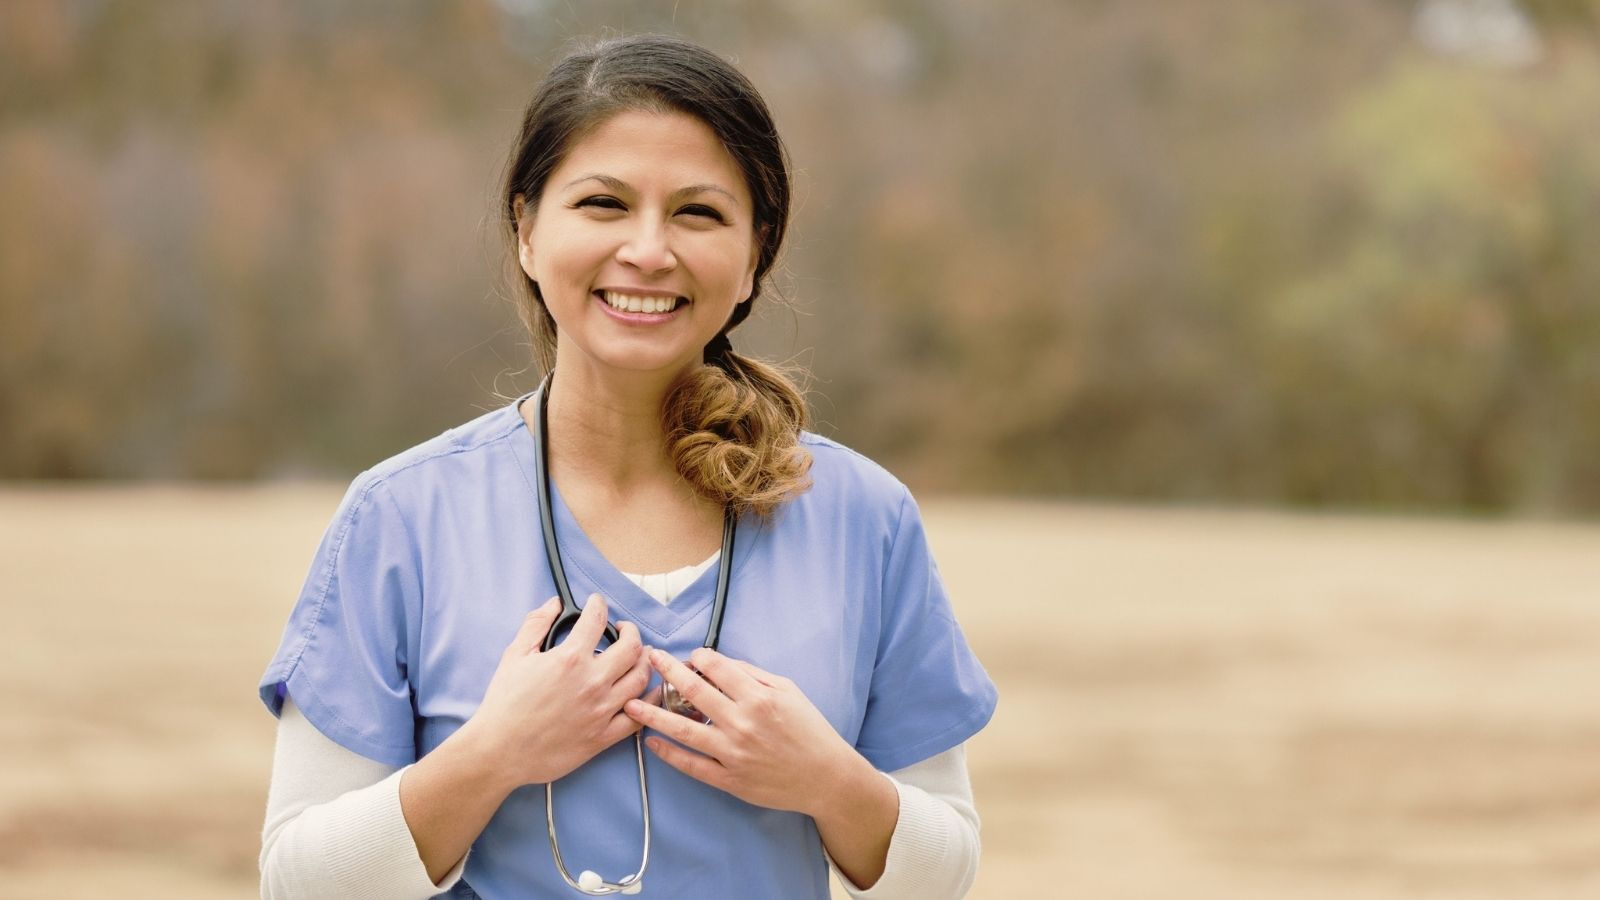 NMC UK Quick Application Guide for Foreign Educated Nurses